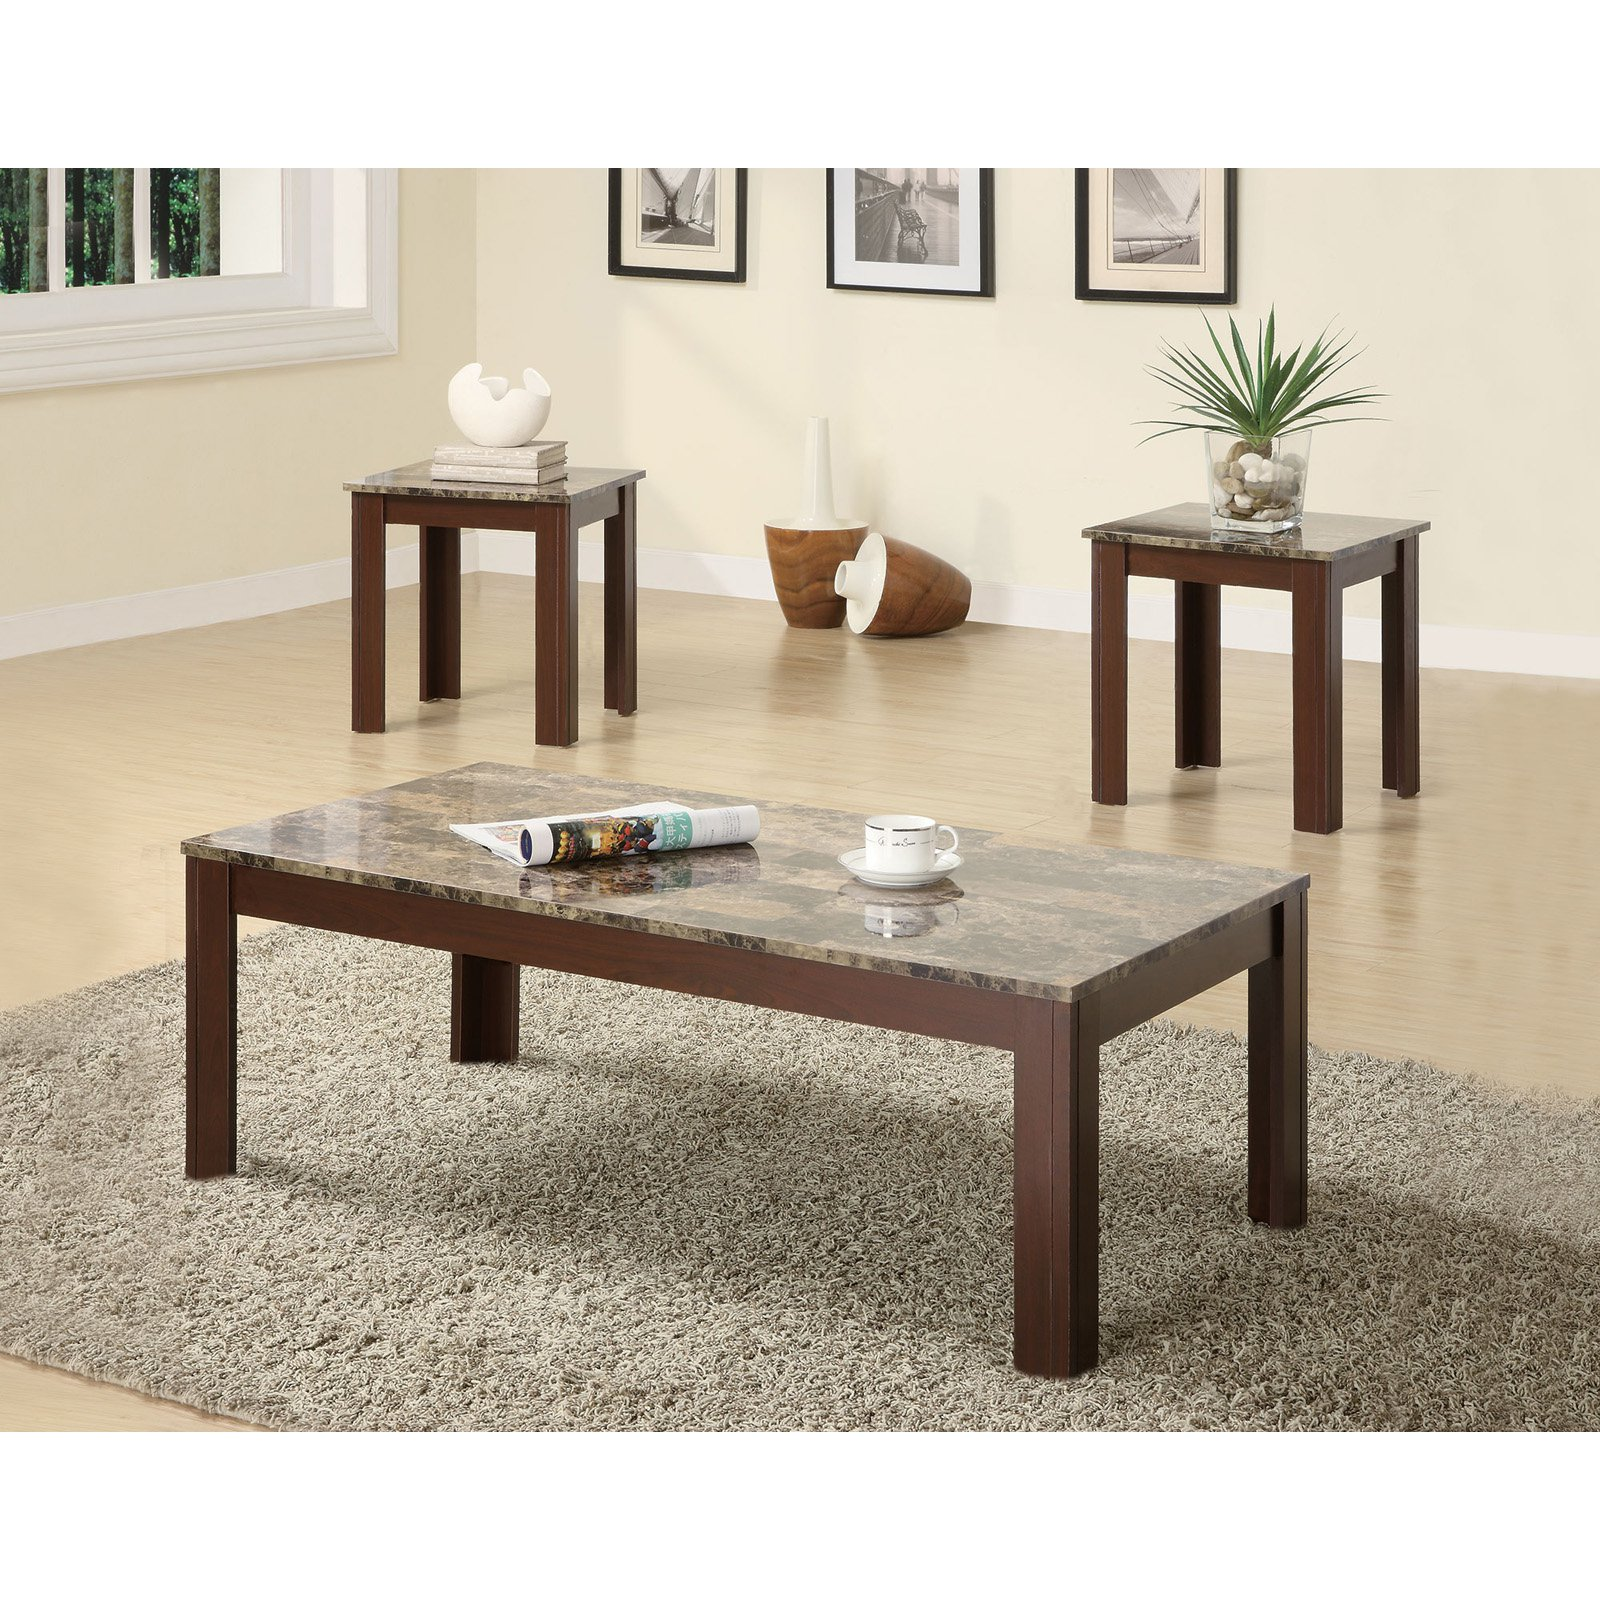 Coaster Furniture 3 Piece Casual Coffee Table Set Walmart